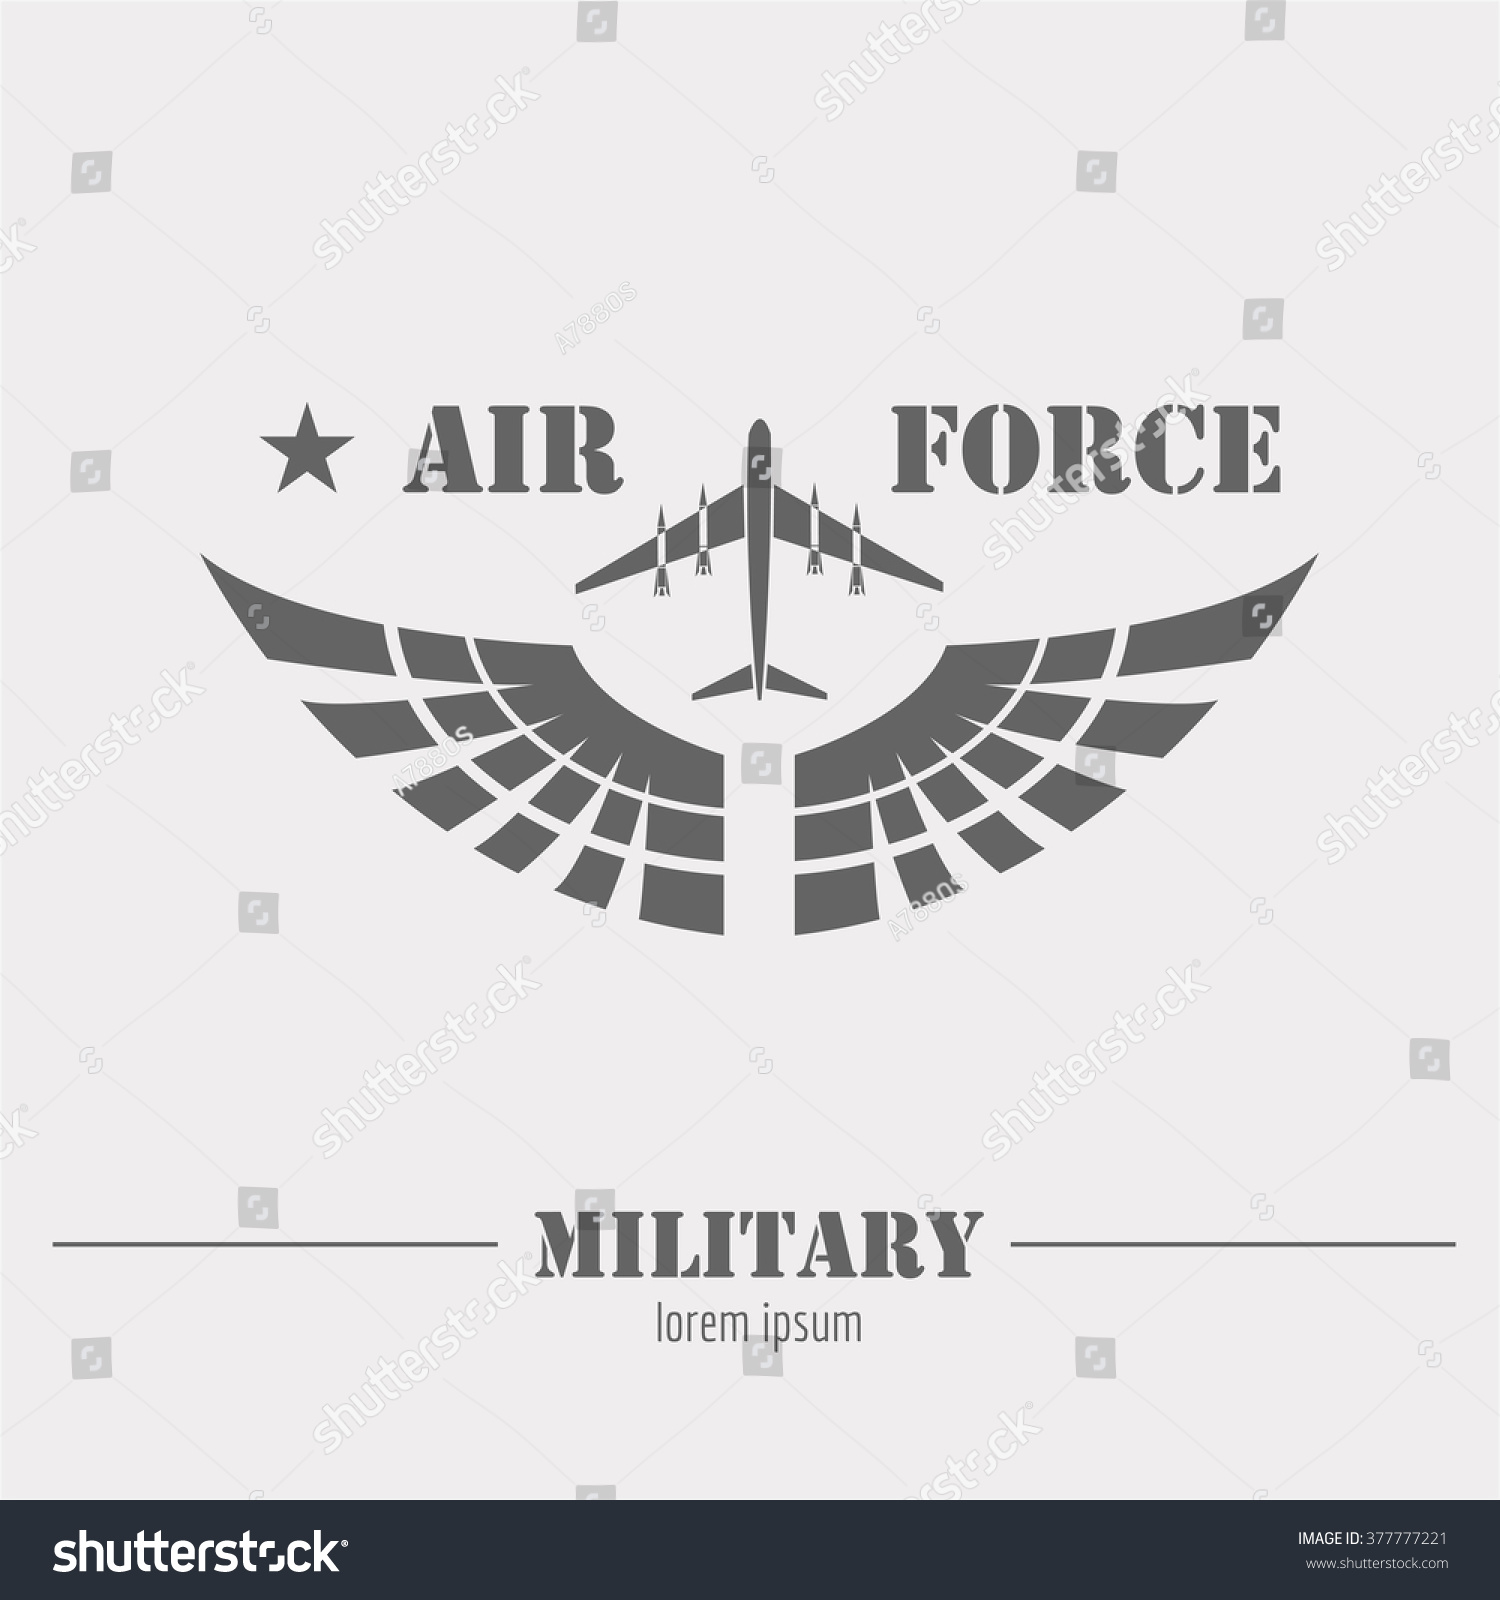 military logo badge air force graphic stock vector 377777221 shutterstock. Black Bedroom Furniture Sets. Home Design Ideas